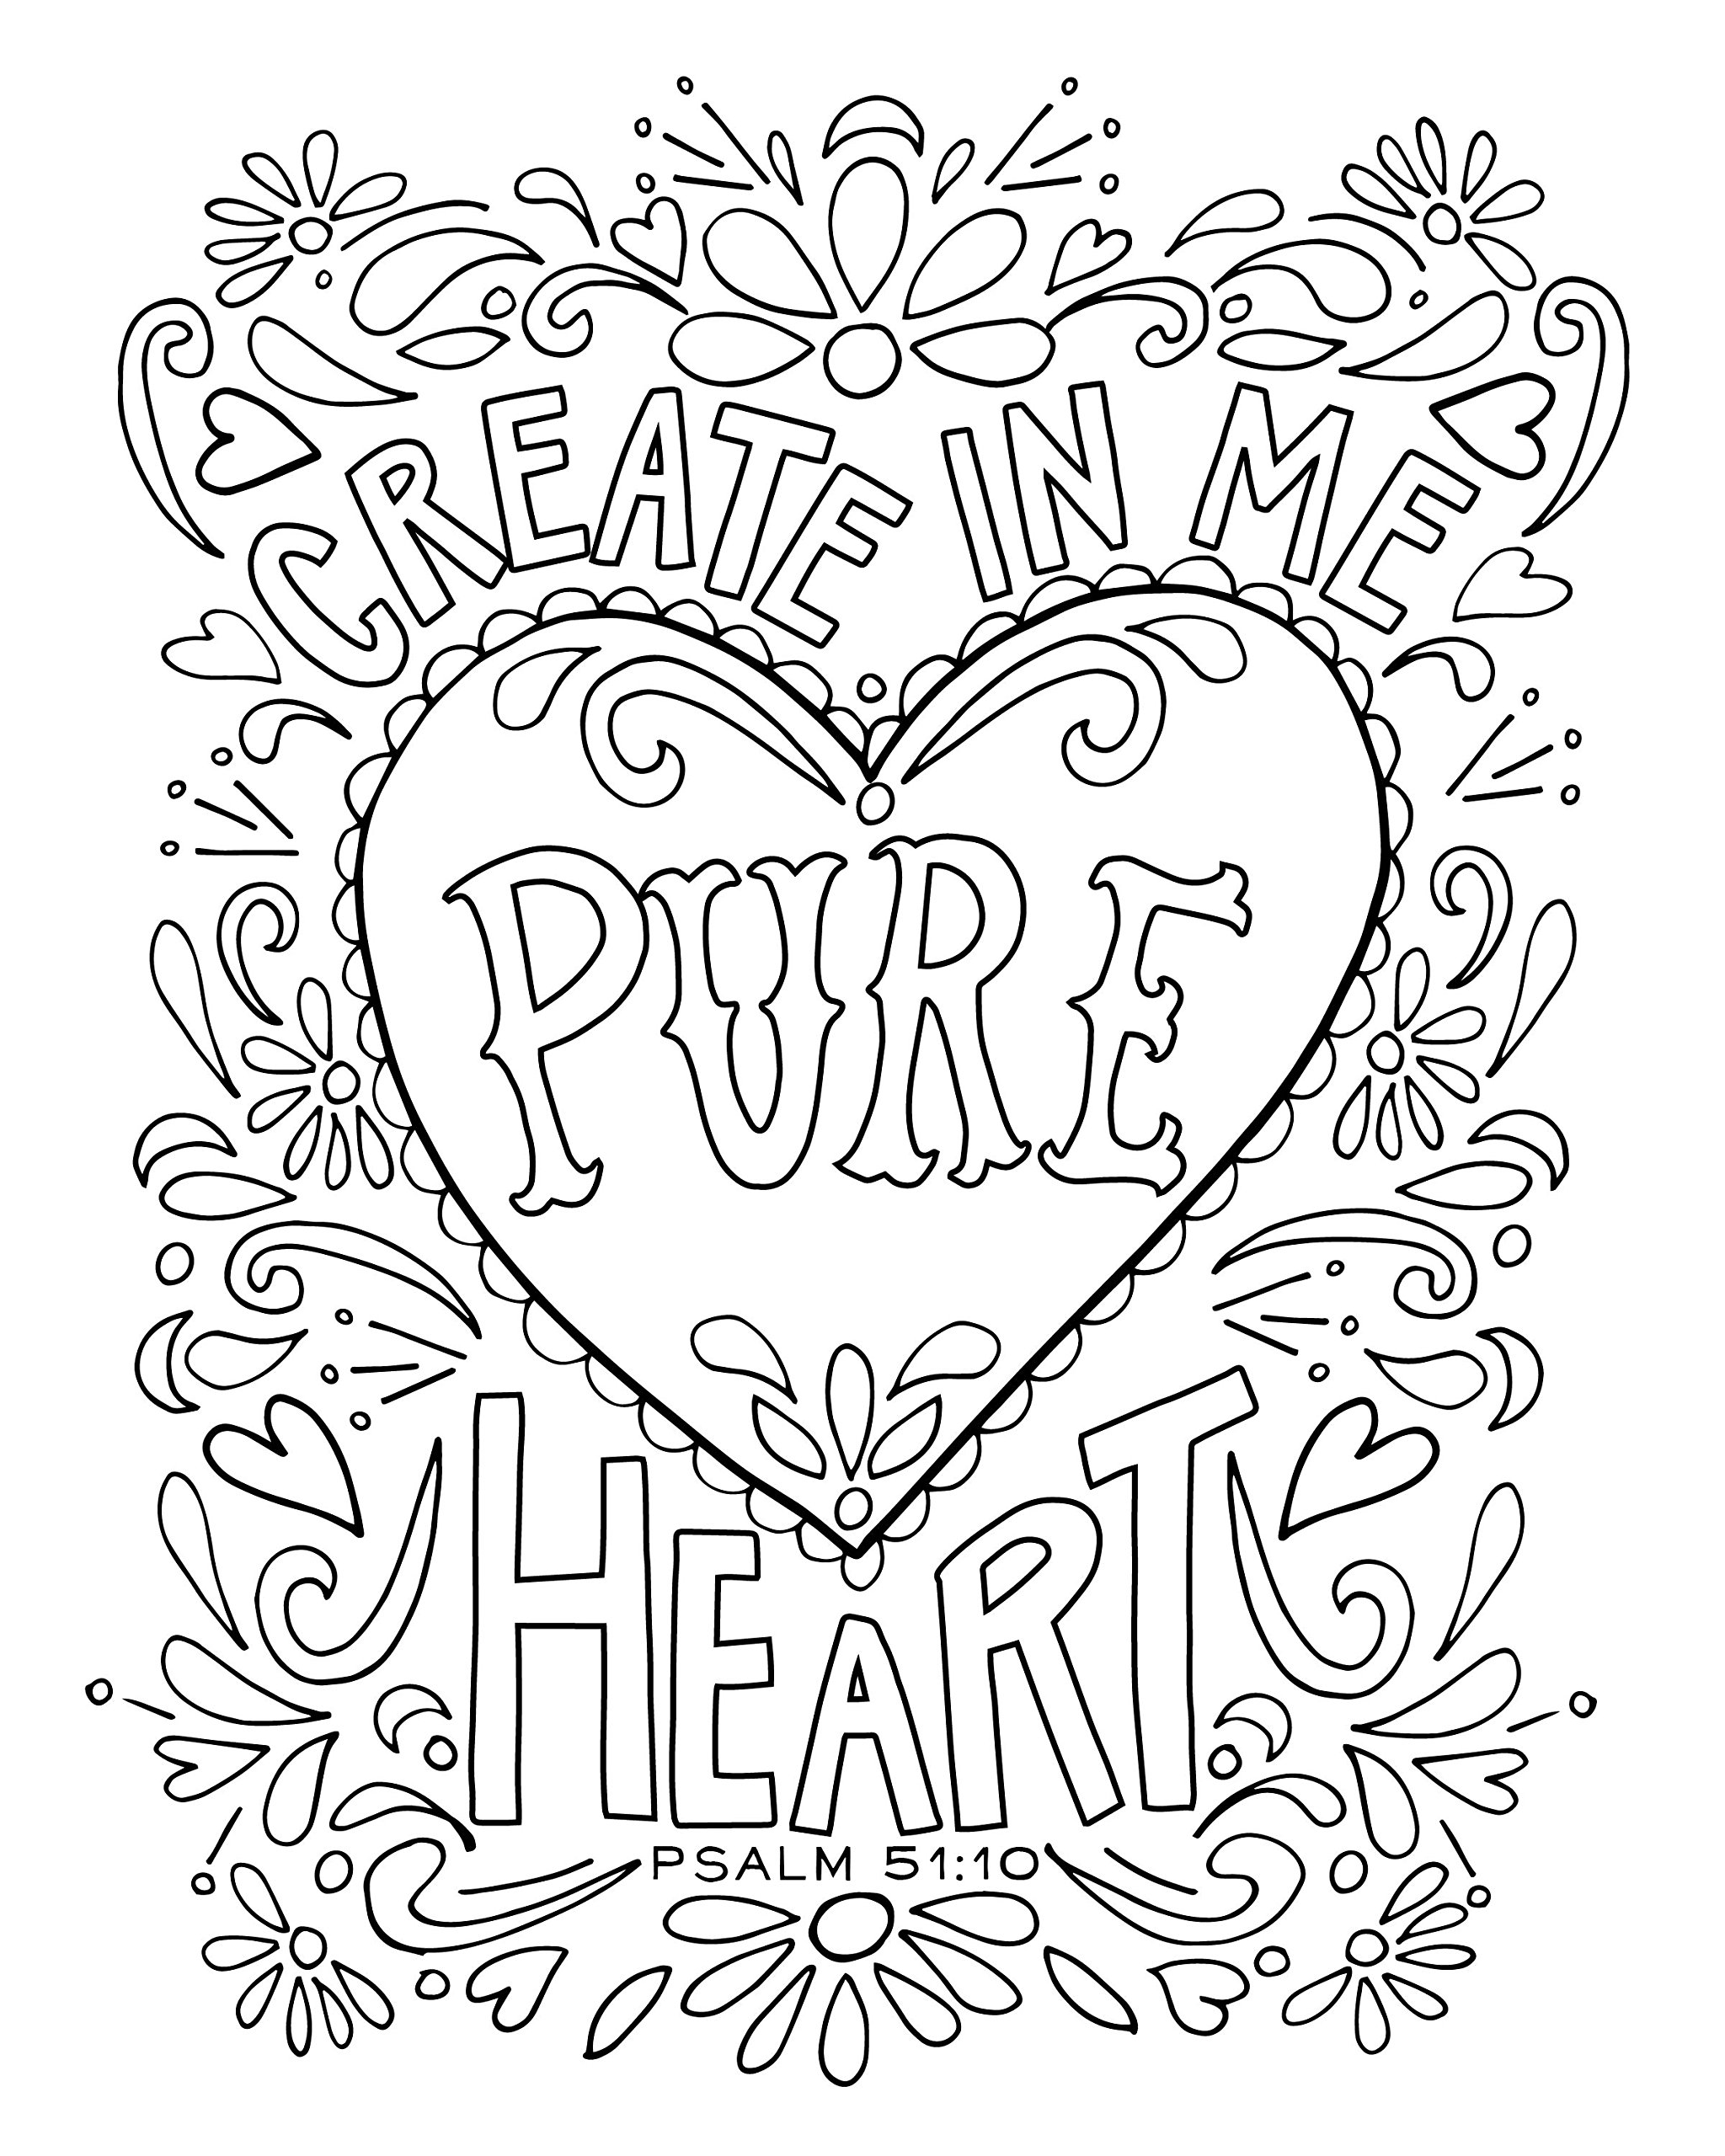 Amazon Beauty In The Bible Adult Coloring Book Volume 3 Premium Edition Christian Journaling And Lettering Inspirational Gifts